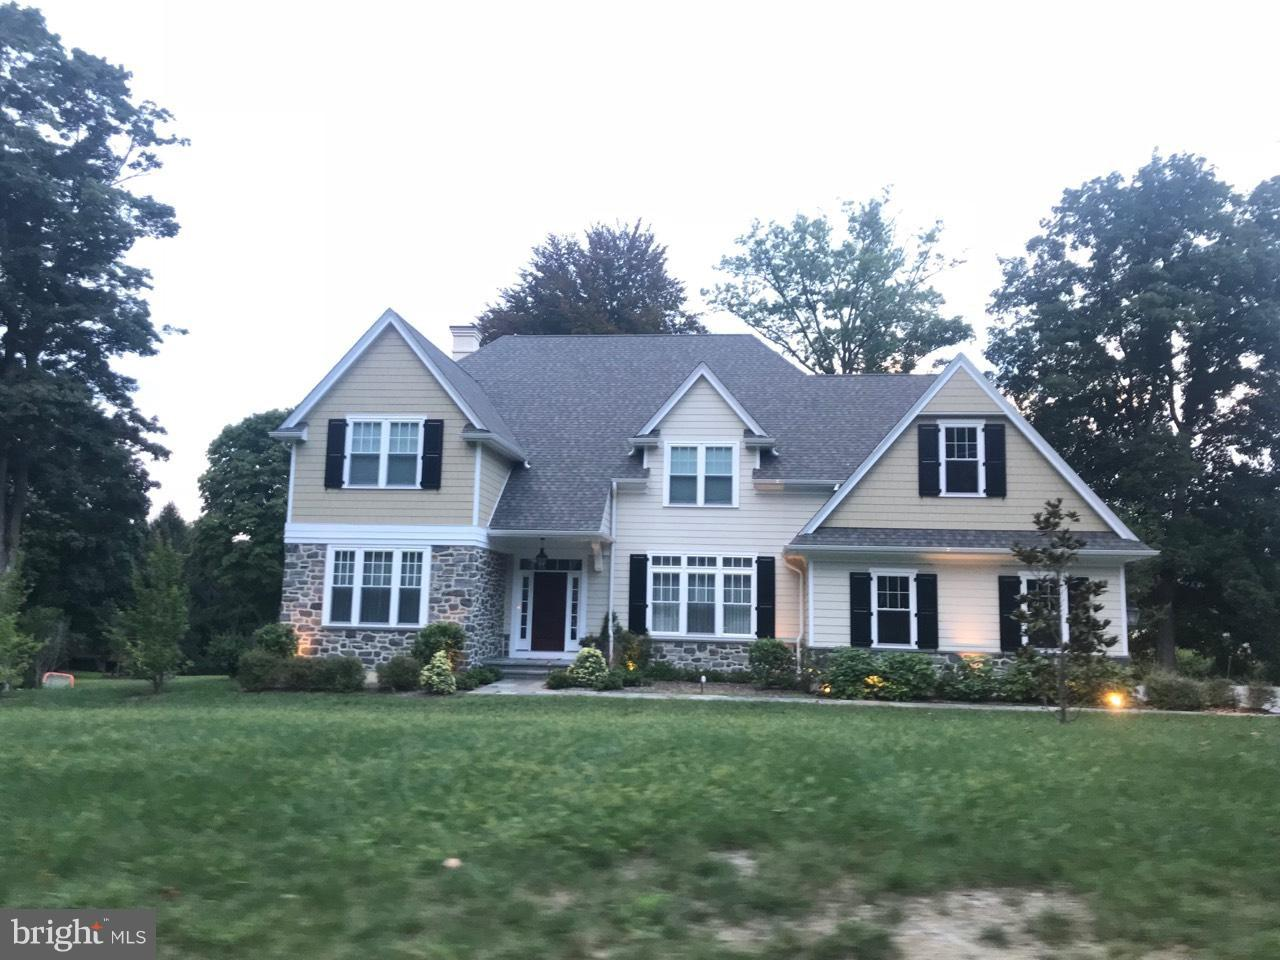 1657 WARPATH RD, WEST CHESTER, PA 19382